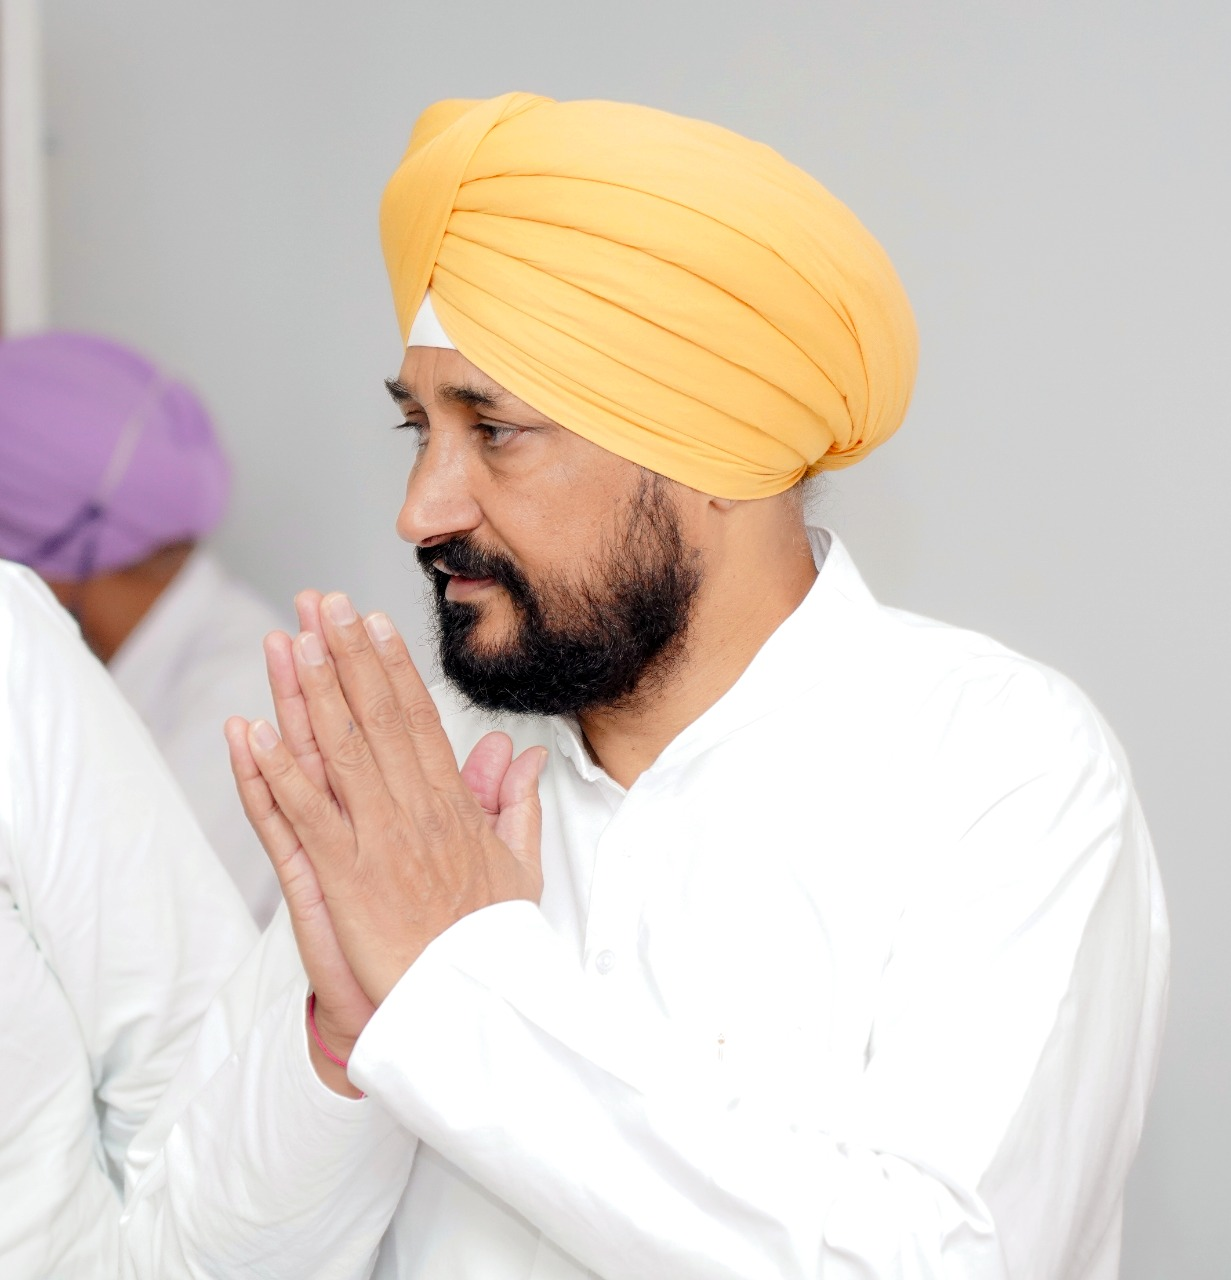 Punjab CM urges centre to ensure coal supply as per requirements to avert power crisis